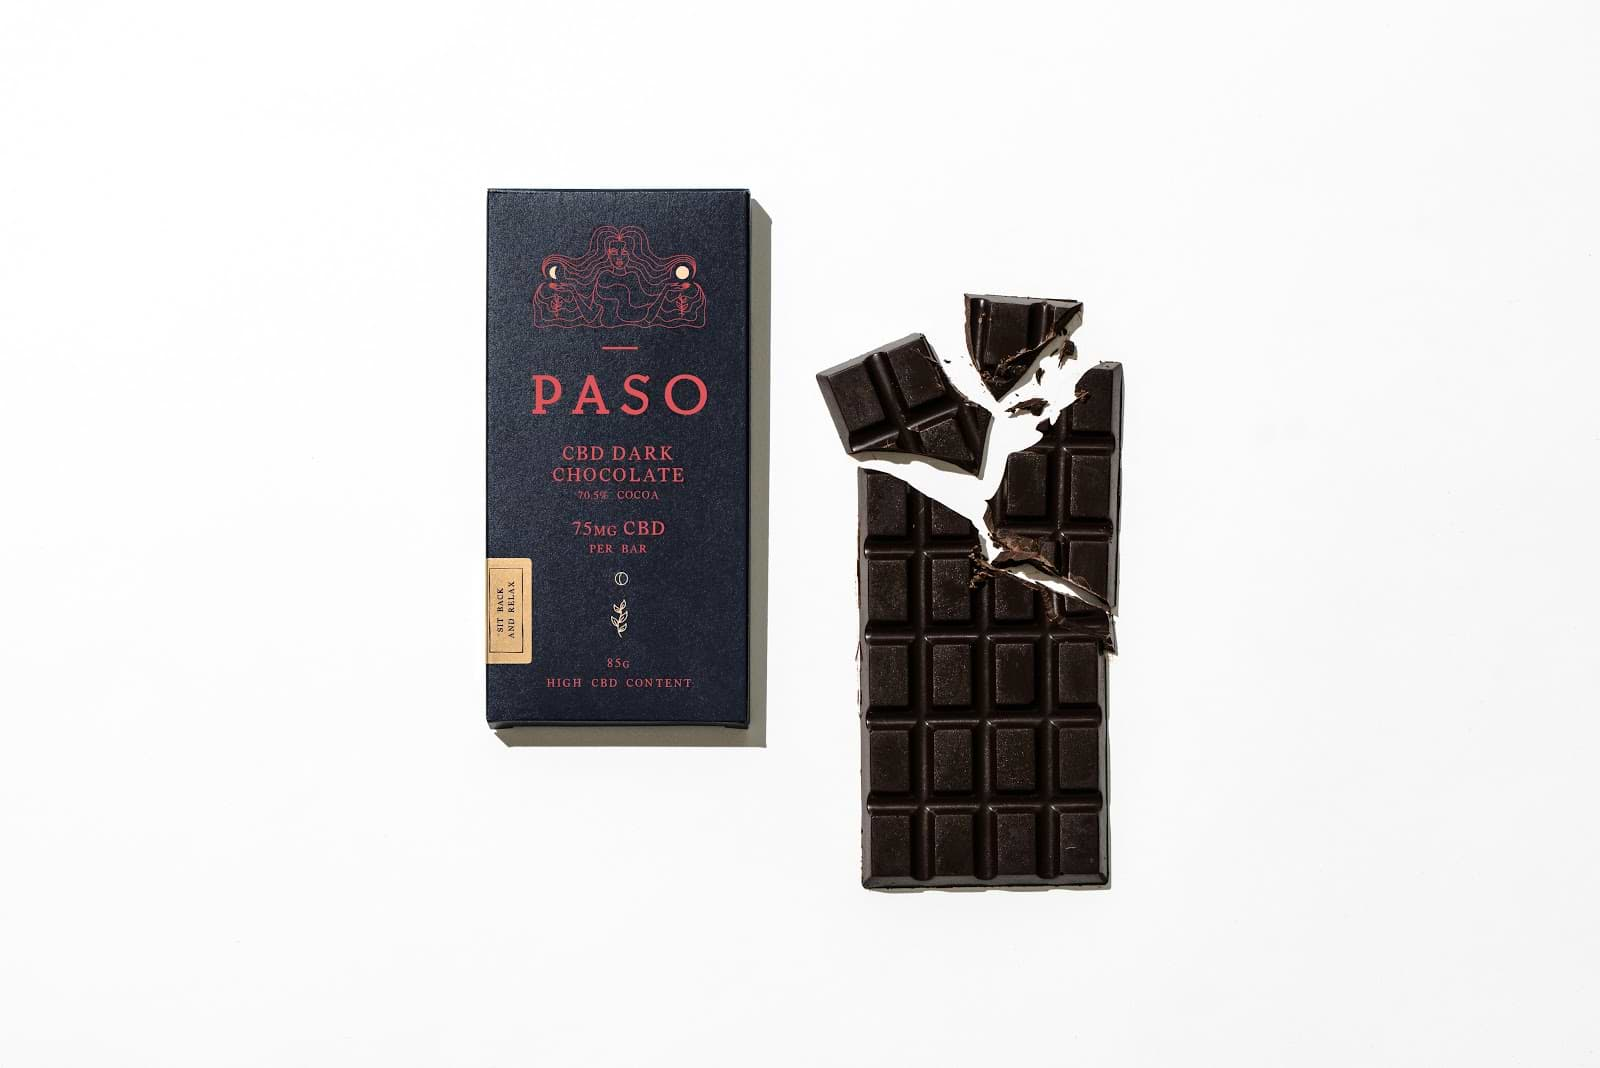 I Love Chocolate and Cbd – Now I Can Buy Both Together: CBD Chocolate in the Uk!